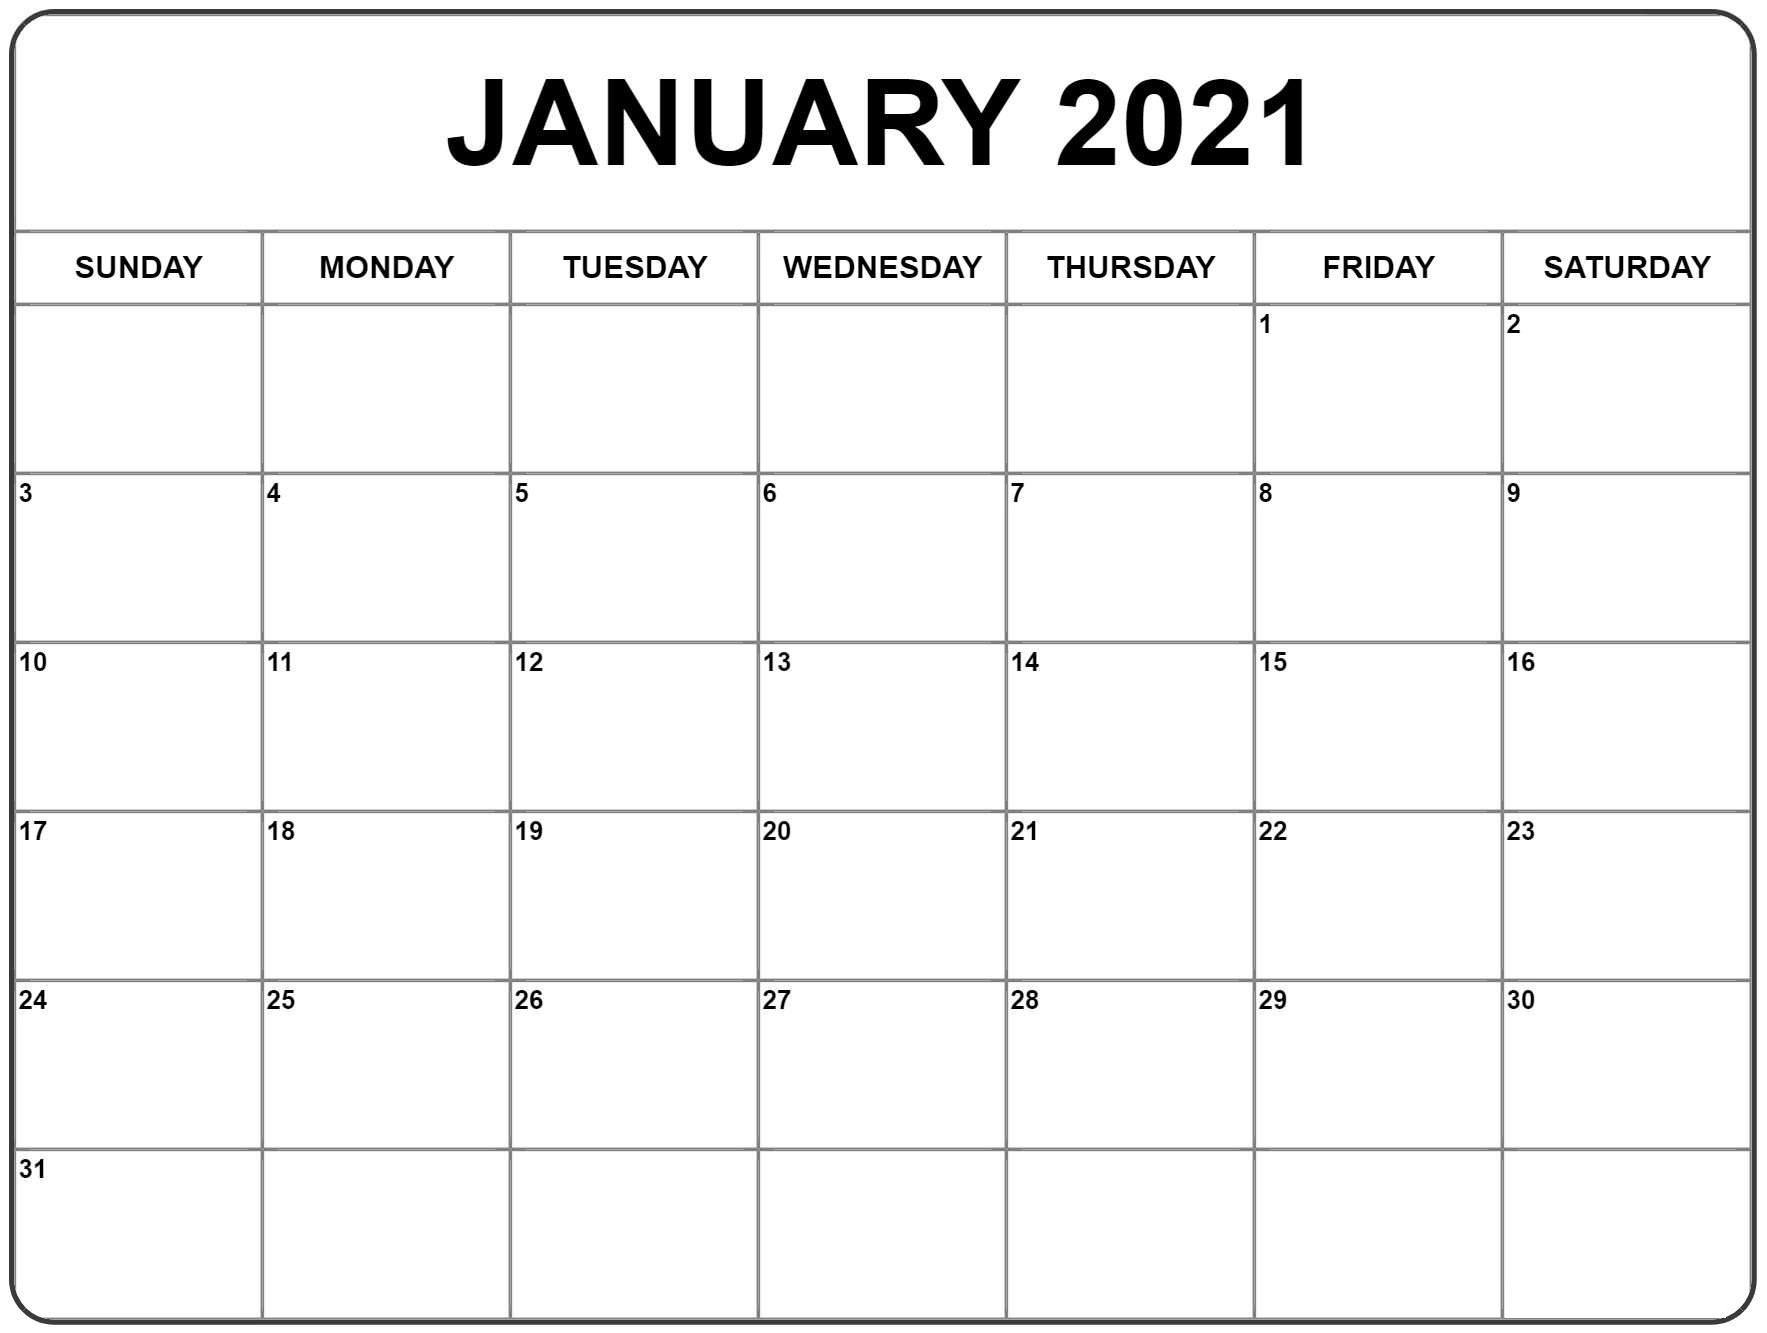 January 2021 Calendar | Monthly Calendar Printable, January